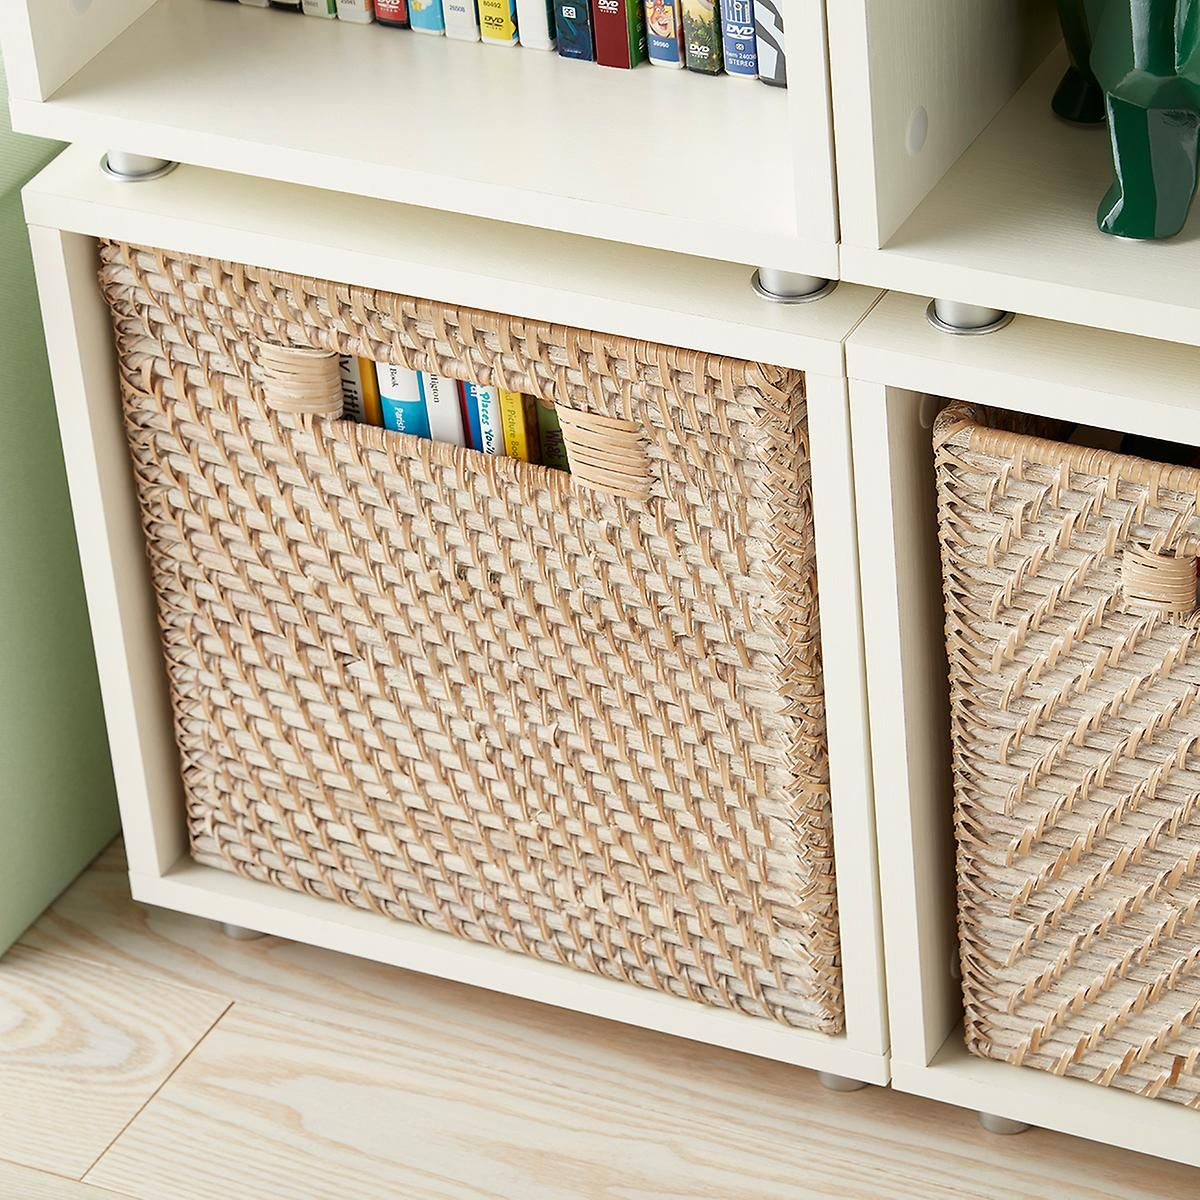 Whitewash Rattan Storage Cube With Handles Cube Storage Fabric Storage Cubes Toy Storage Cubes